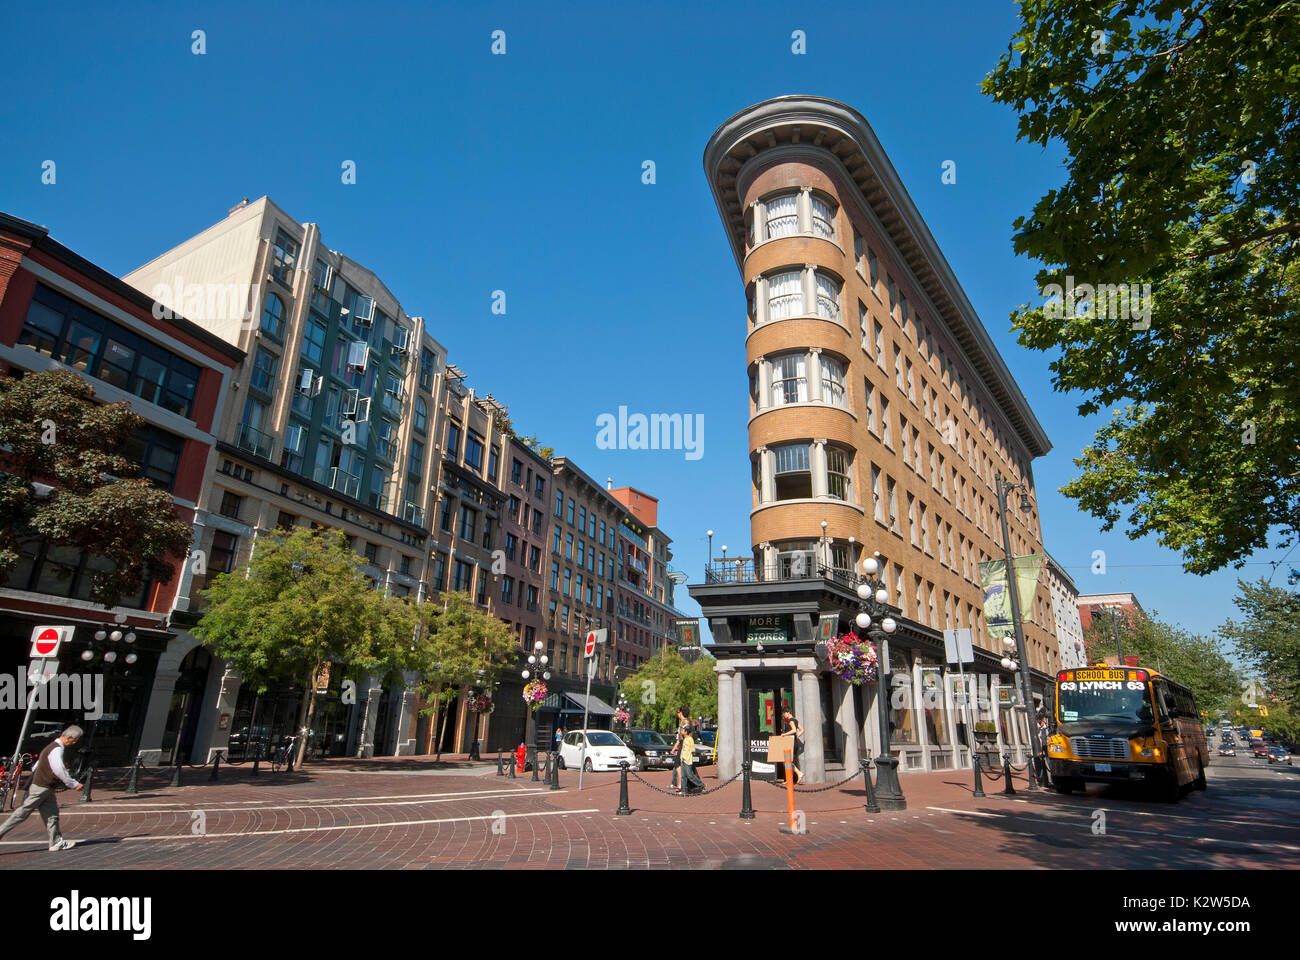 Flatiron Building (built in 1908-1909 by Parr and Fee Architects) in Gastown district, Vancouver, British Columbia, Canada - Stock Image